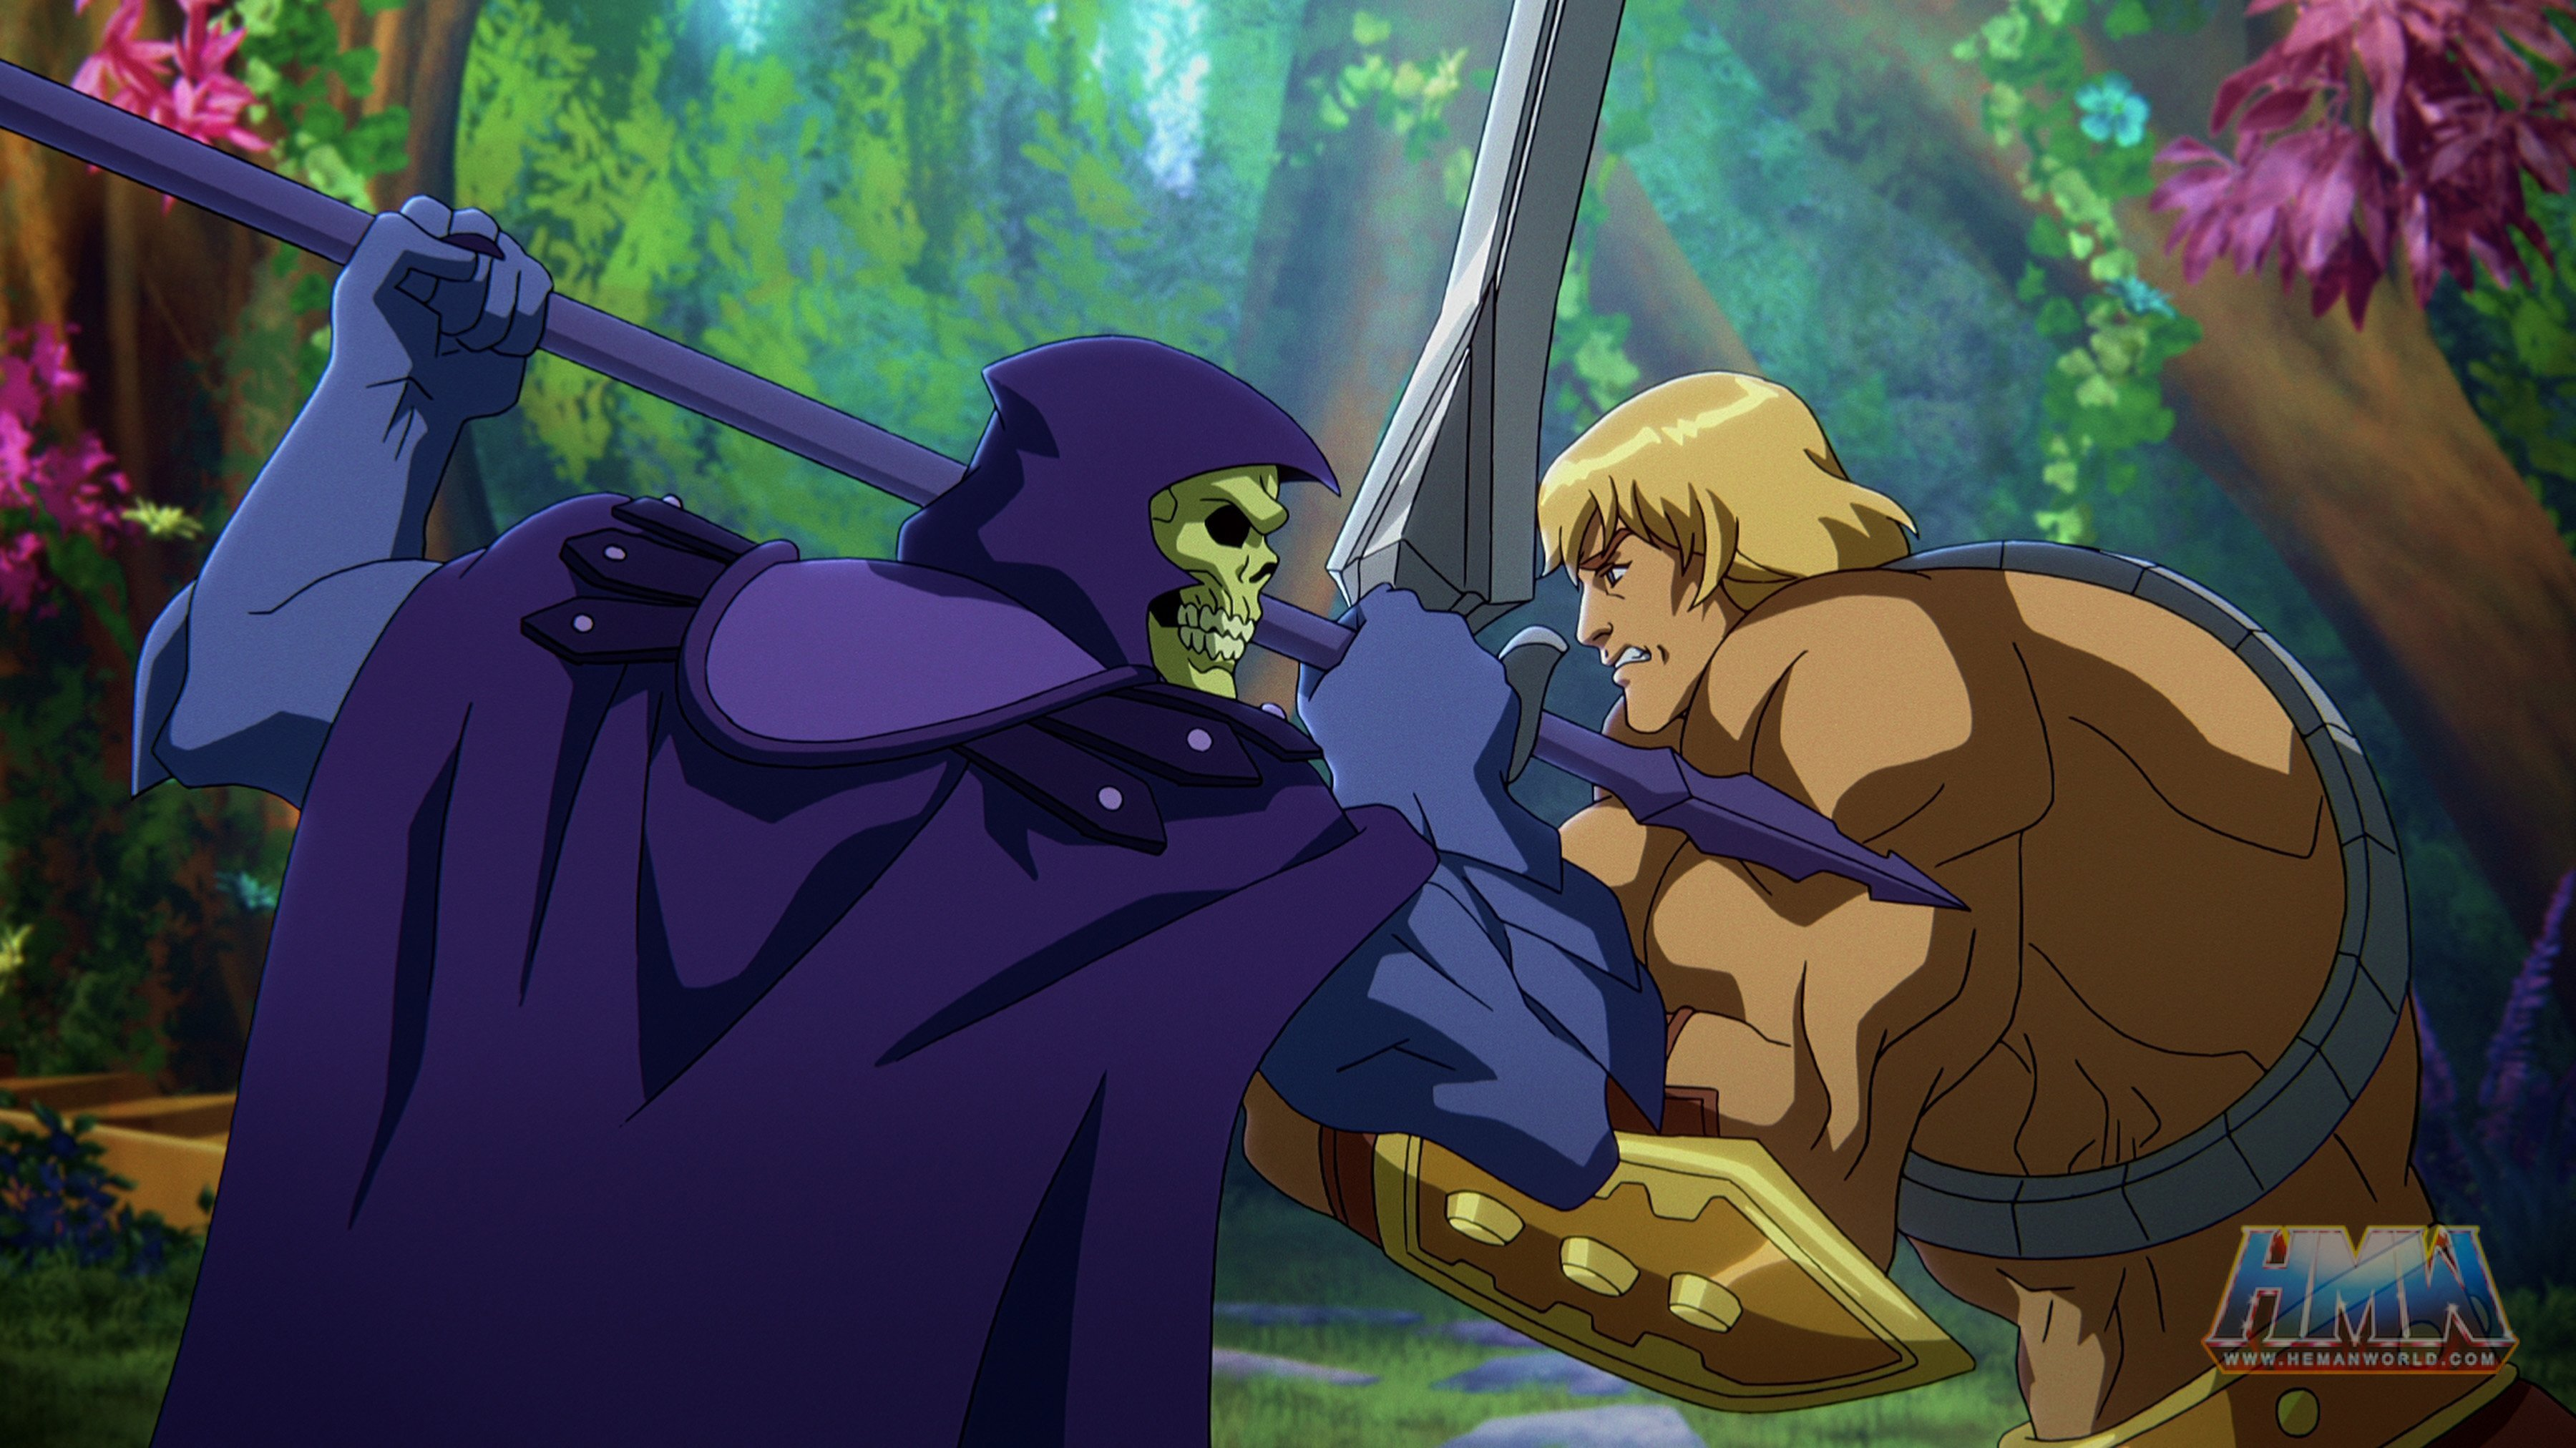 In a CG animated still from Masters of the Universe: Revelation, Skeletor (left), who wears a purple cloak and hood over his skull, grips his spear in a battle against He-Man (right), a strong shirtless blonde male with a golden armored belt and wrist plates holding a silver sword. The two are standing face to face in a forest with bright foliage.